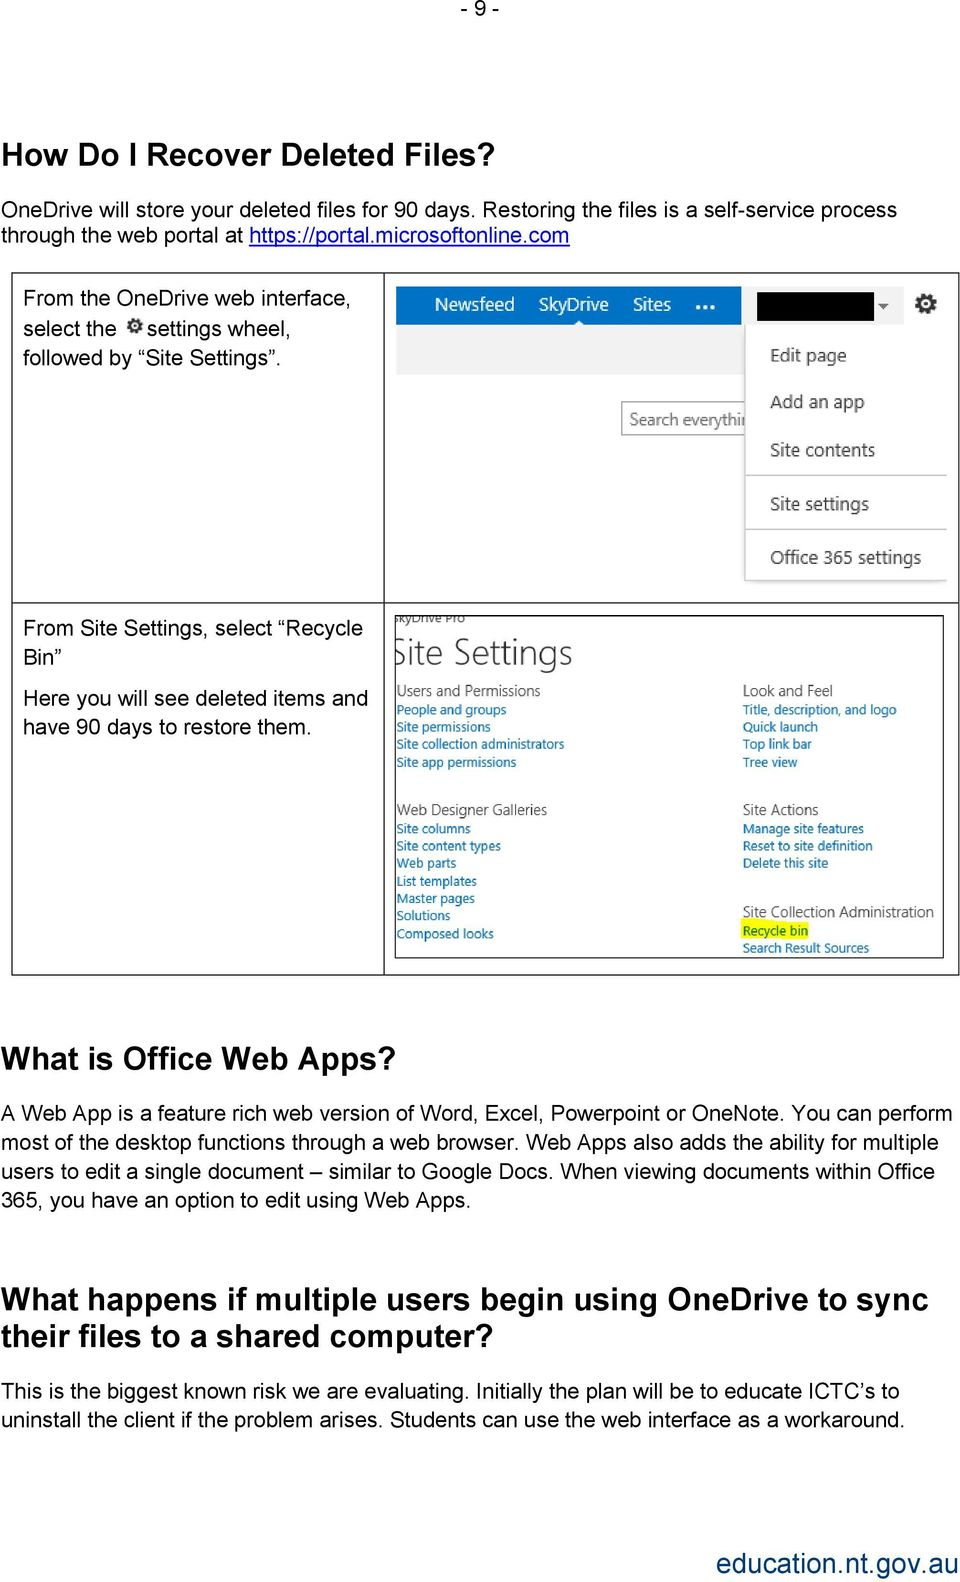 What is Office Web Apps? A Web App is a feature rich web version of Word, Excel, Powerpoint or OneNote. You can perform most of the desktop functions through a web browser.